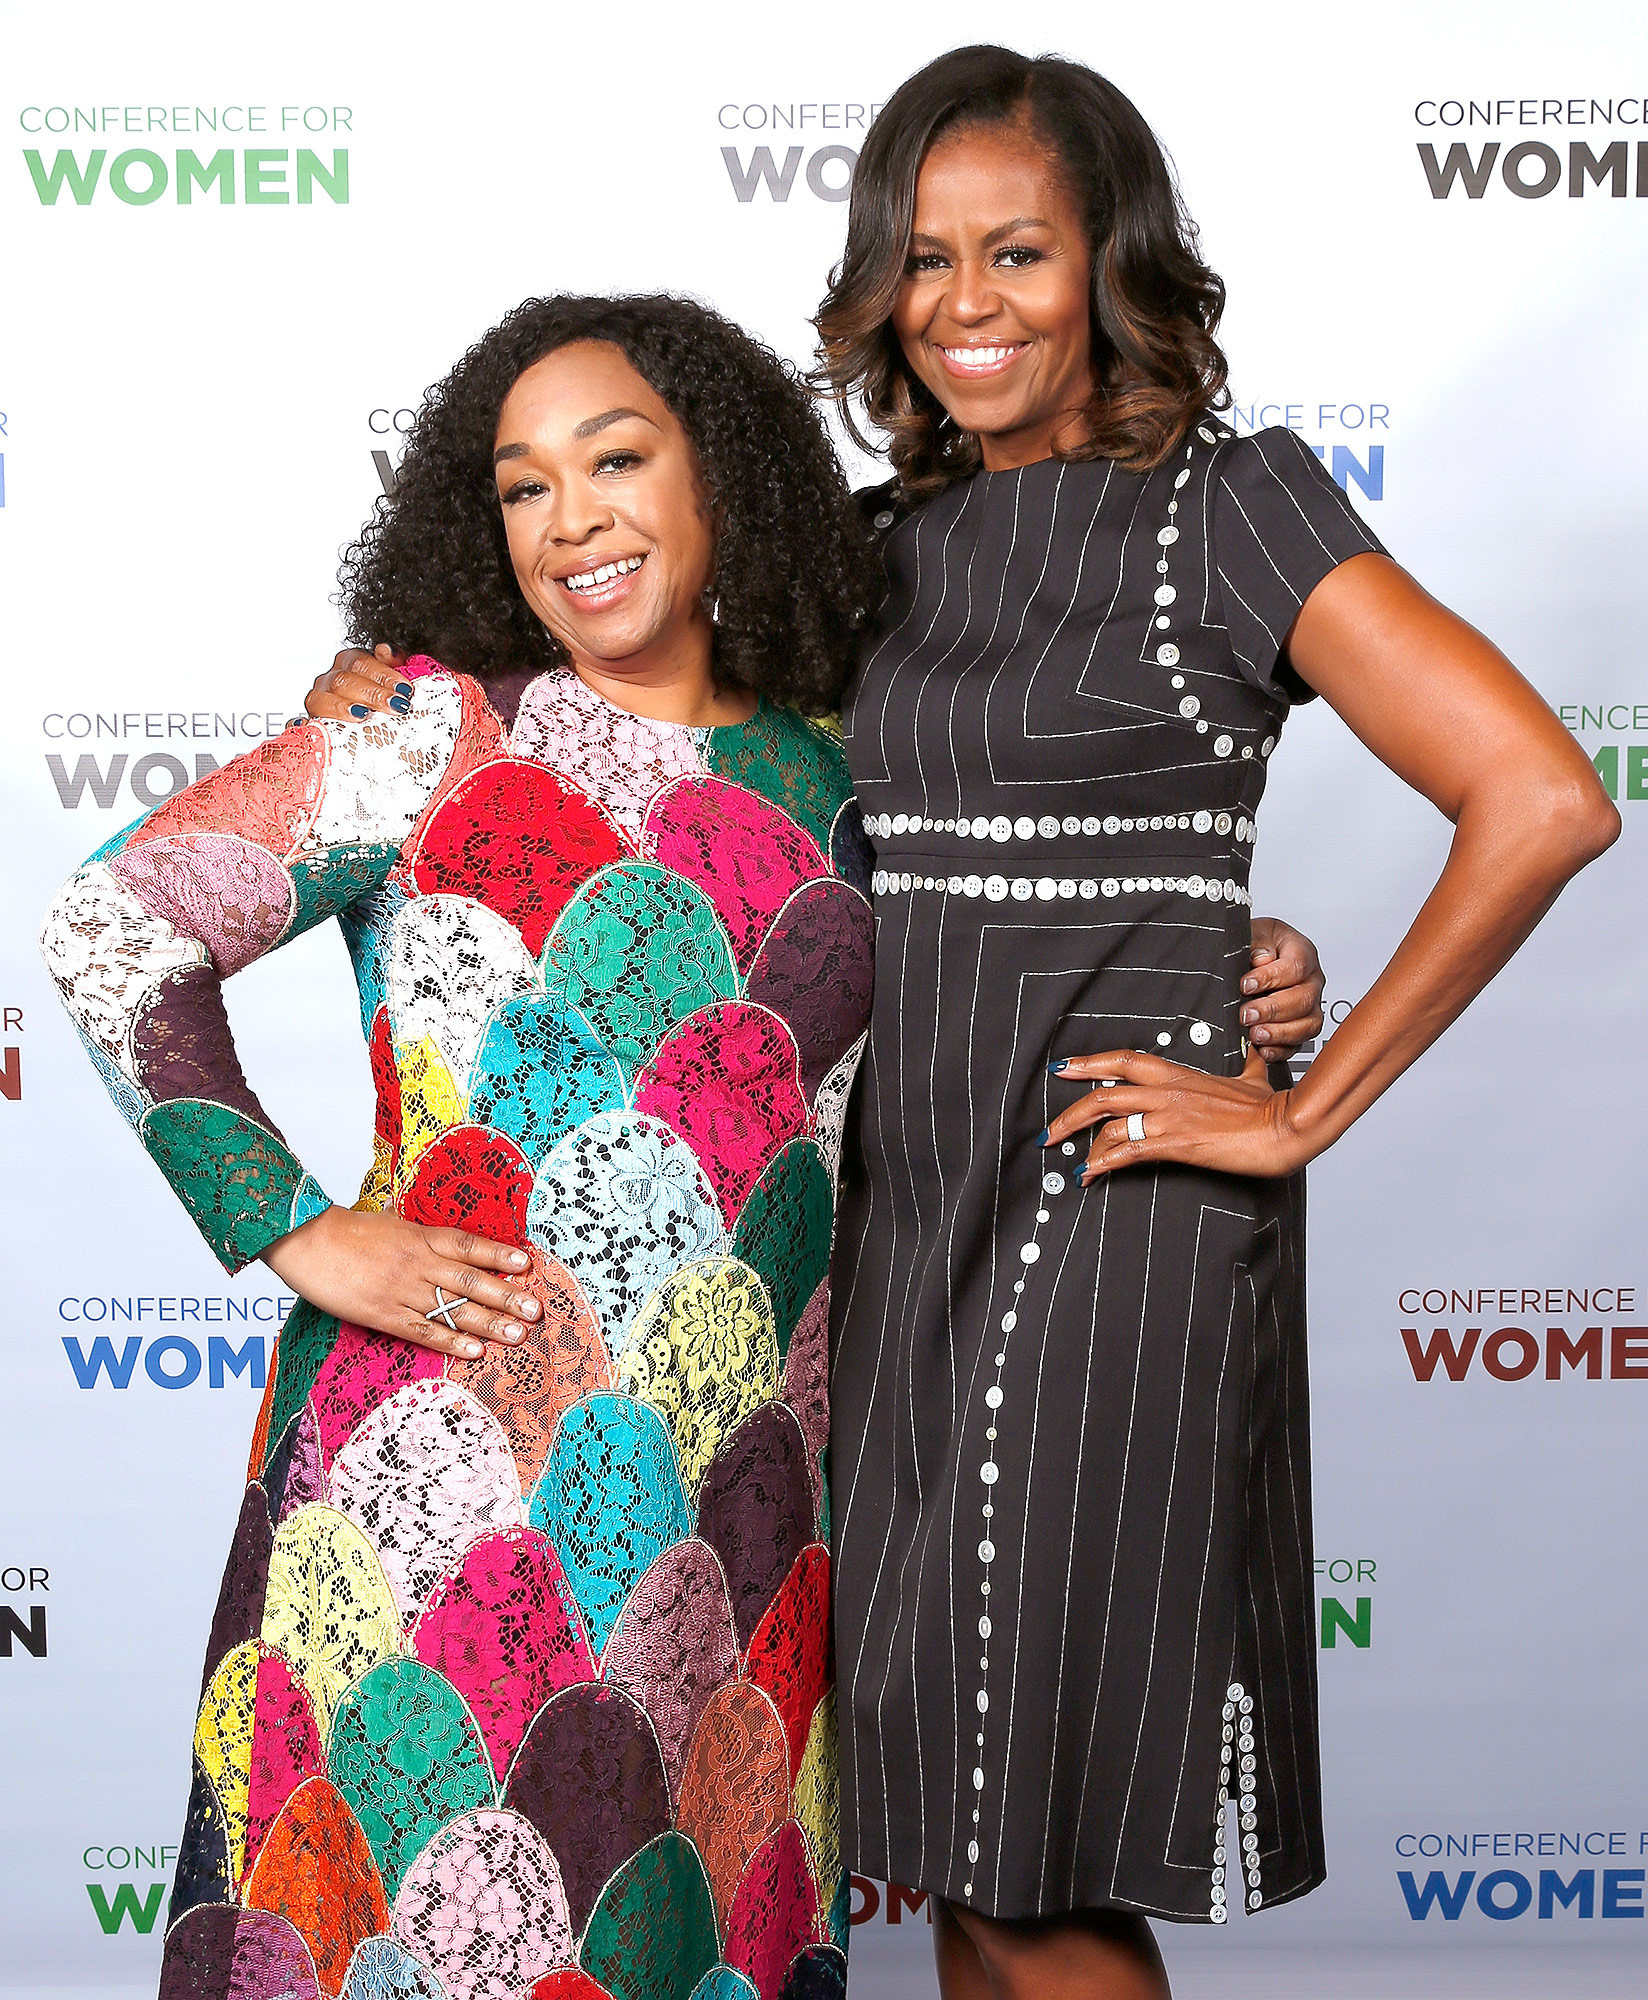 PHILADELPHIA, PA - OCTOBER 03:  Screenwriter, director and producer Shonda Rhimes and Former First Lady of the United States Michelle Obama pose for a photo together during Pennsylvania Conference For Women 2017 at Pennsylvania Convention Center on October 3, 2017 in Philadelphia, Pennsylvania.  (Photo by Marla Aufmuth/Getty Images for Pennsylvania Conference for Women)